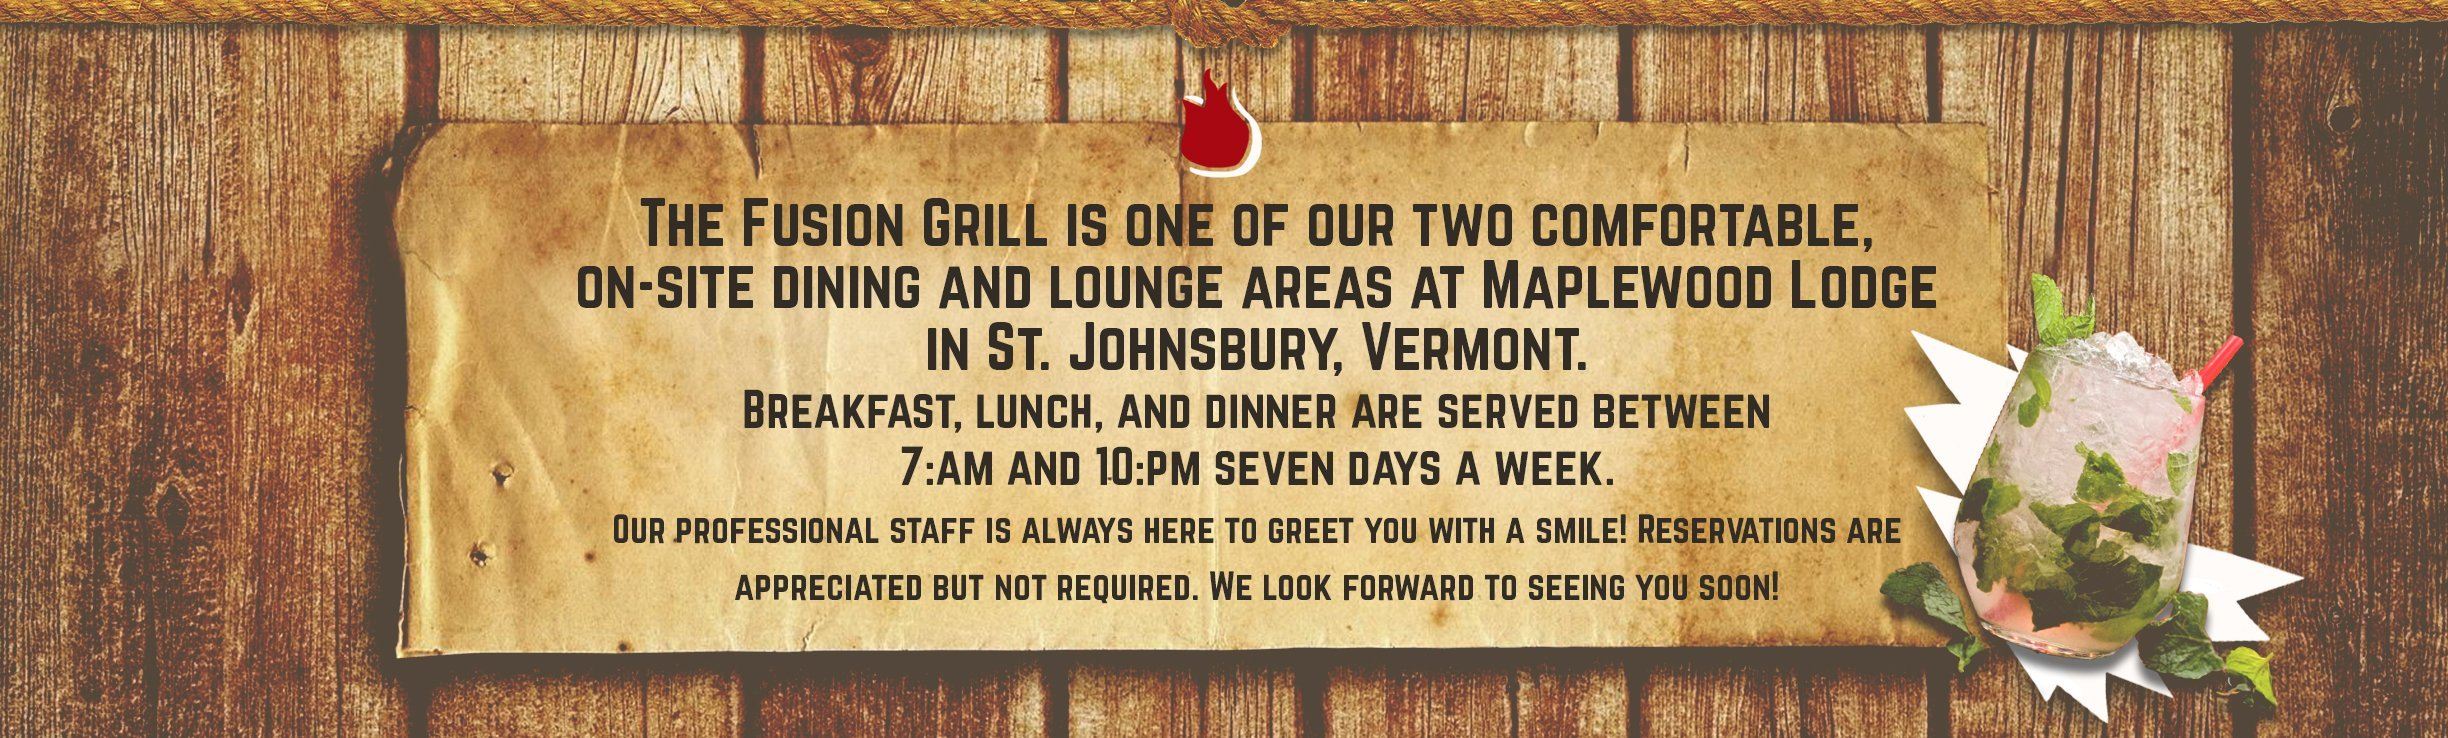 The Fusion Grill Bar & Restaurant in Lyndonville, Vermont.